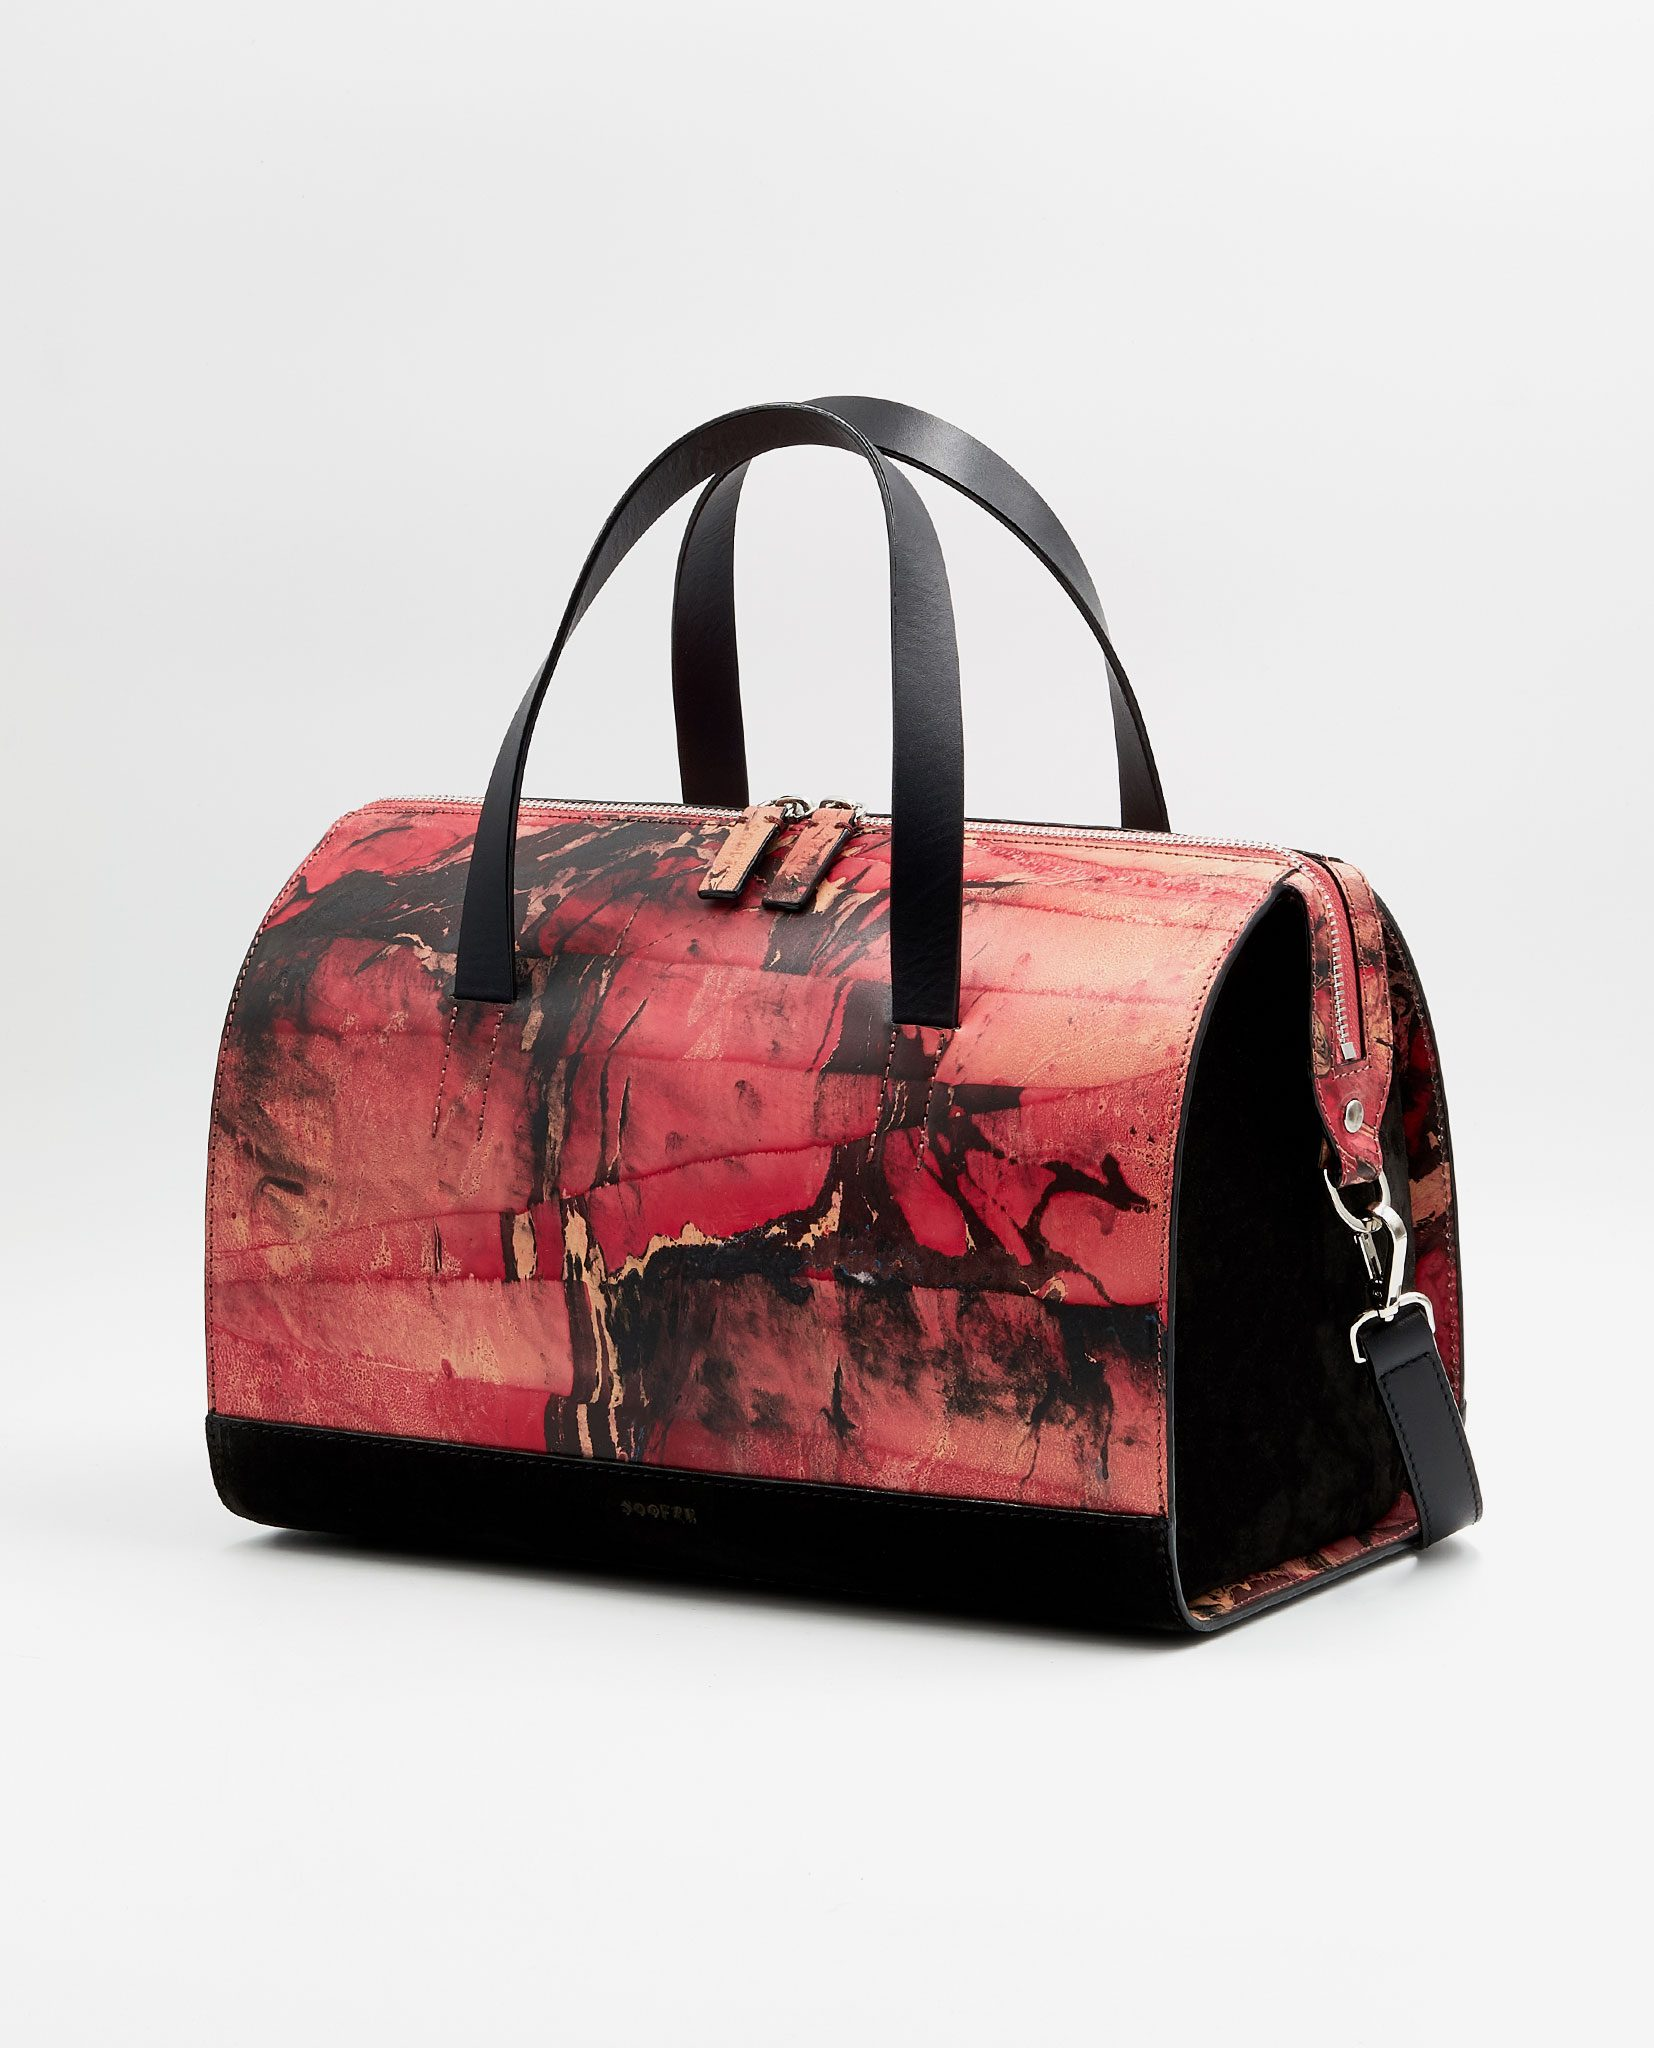 SOOFRE Berlin unique Bowler Bag marble red black